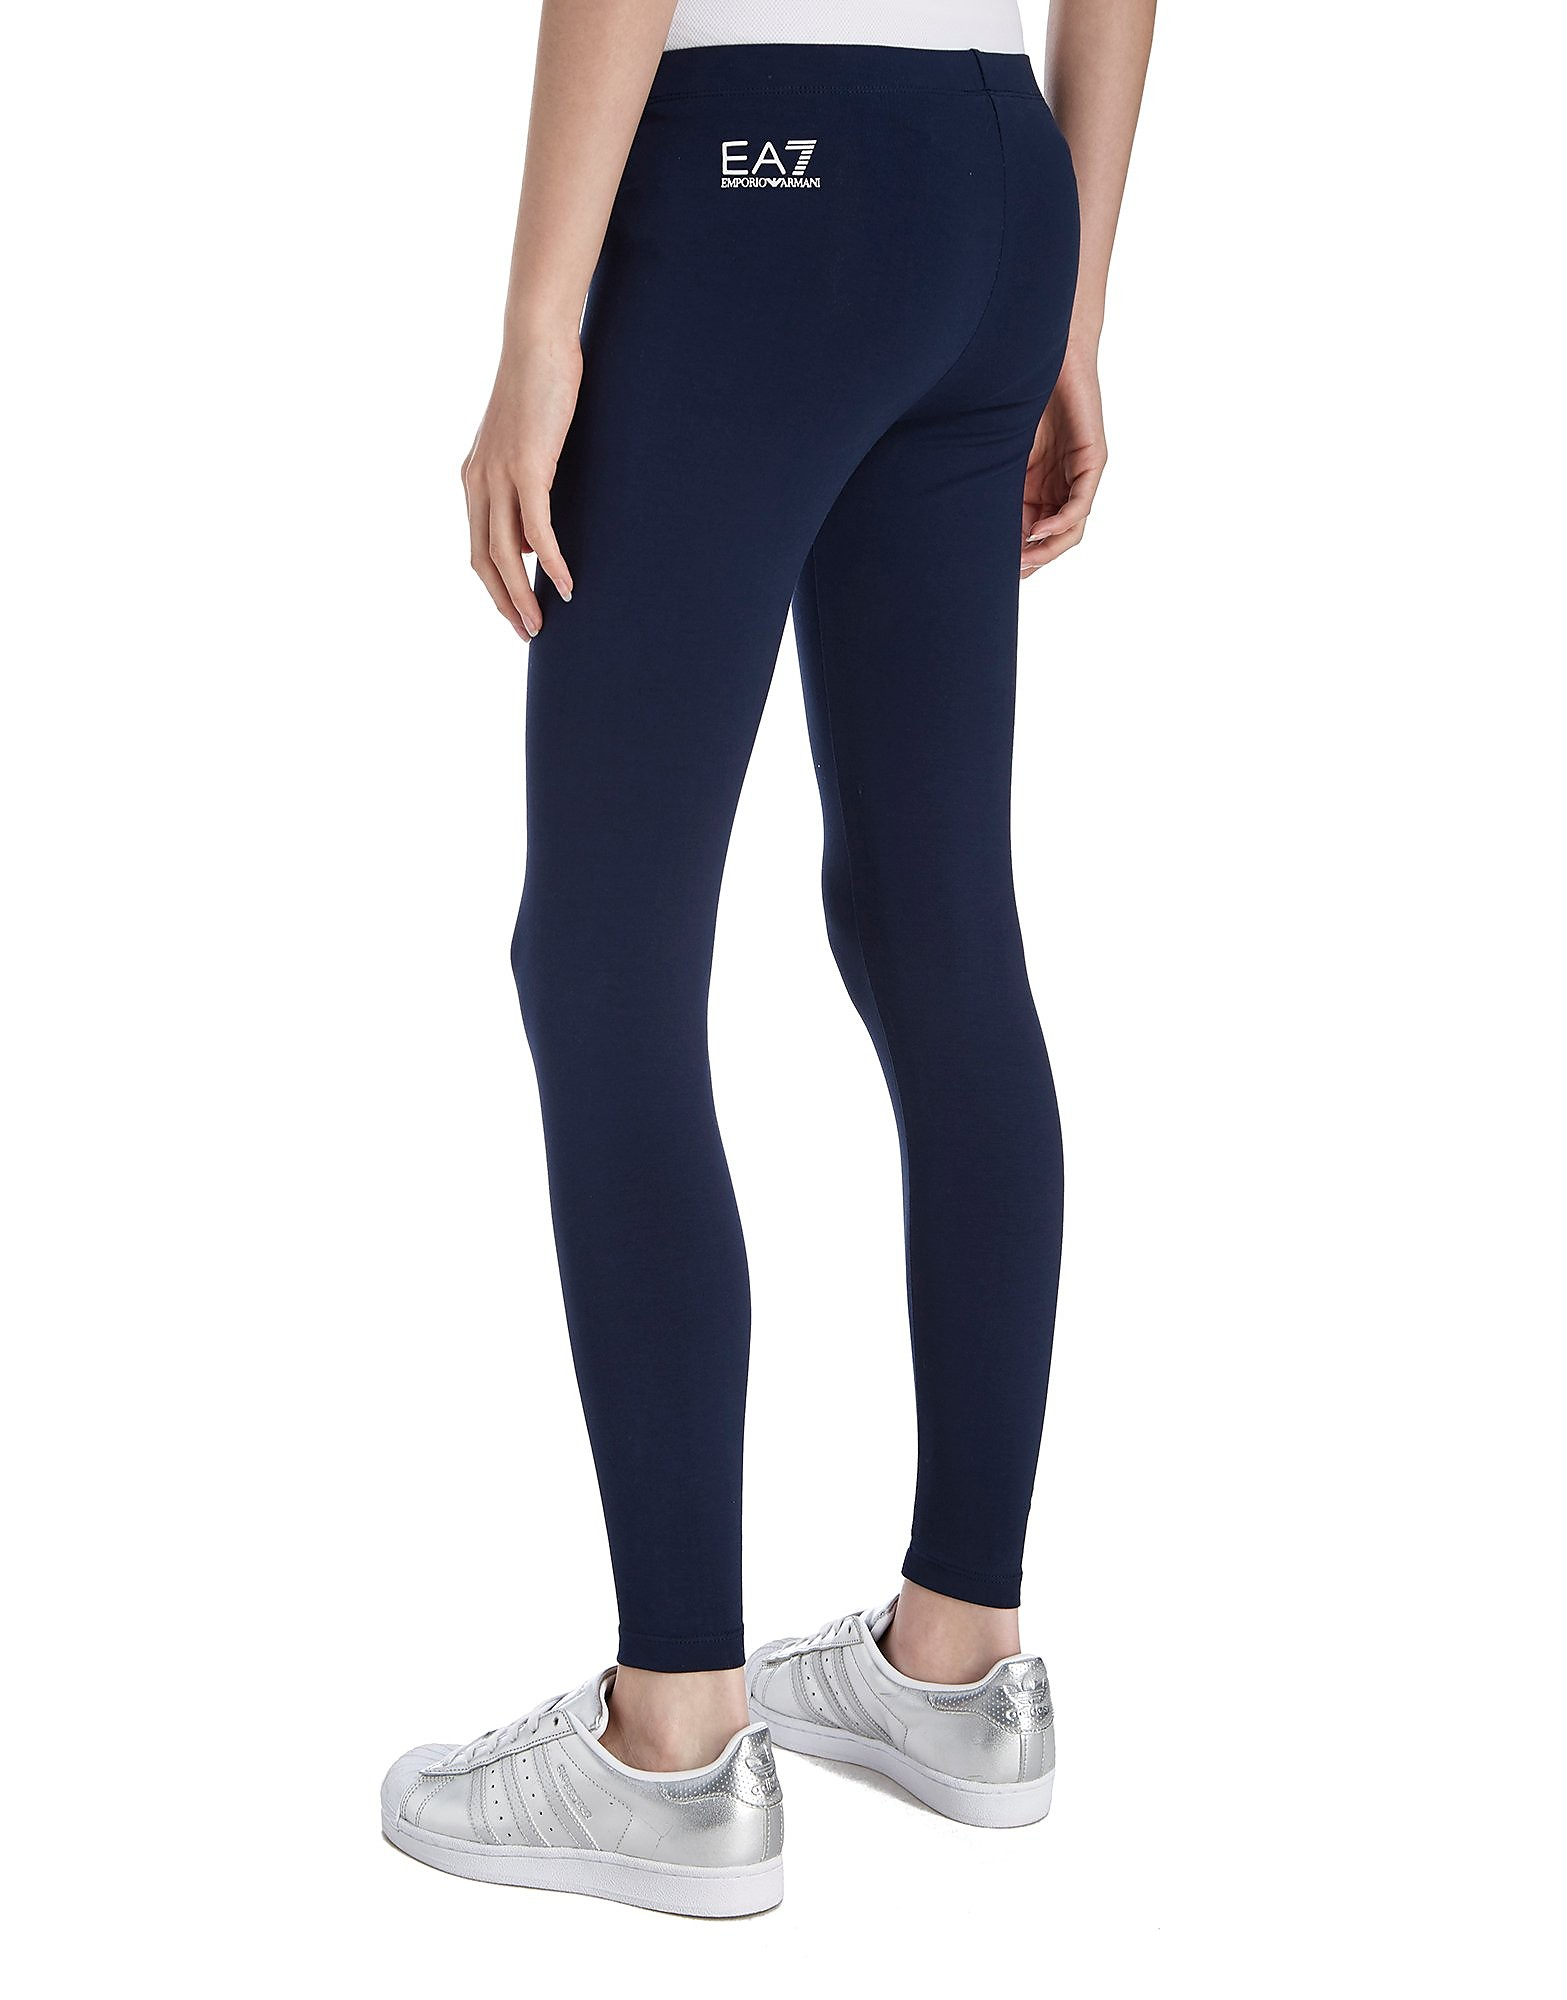 Emporio Armani EA7 Girls' Gloss Leggings Junior